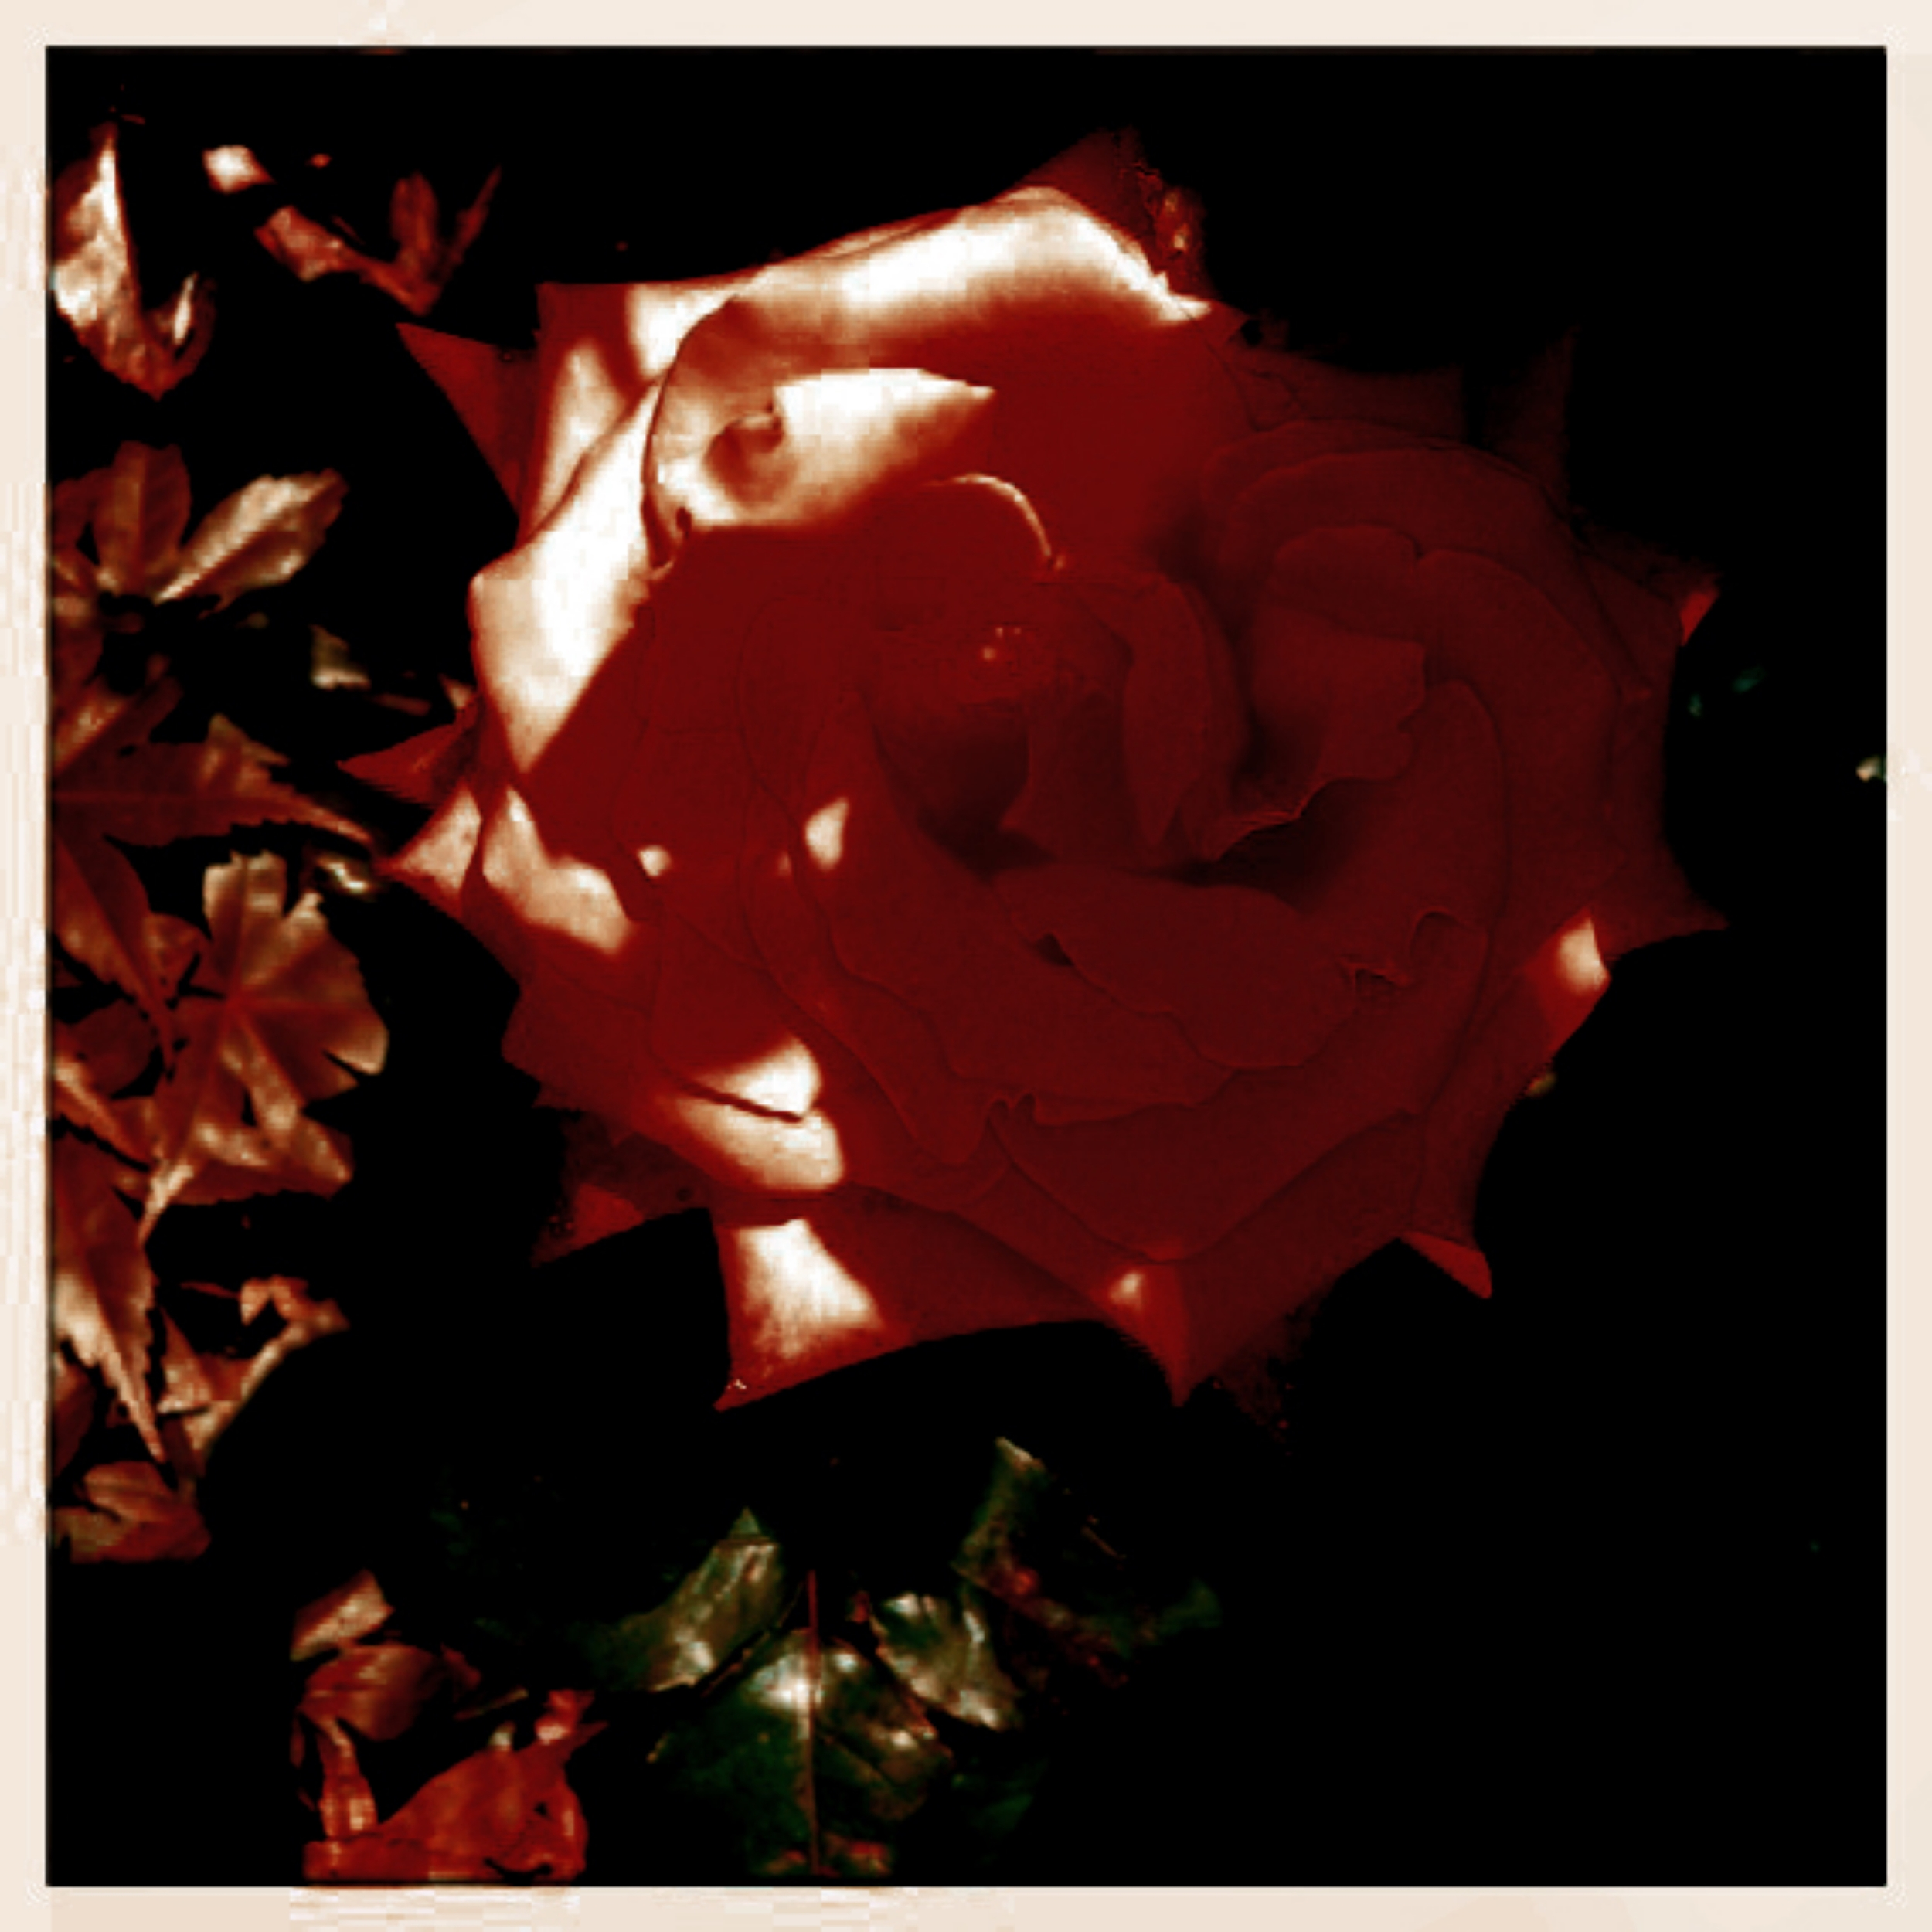 I offer you this heart rose, beautifully captured by my one-and-only  VK-Red Duvivier  xxx